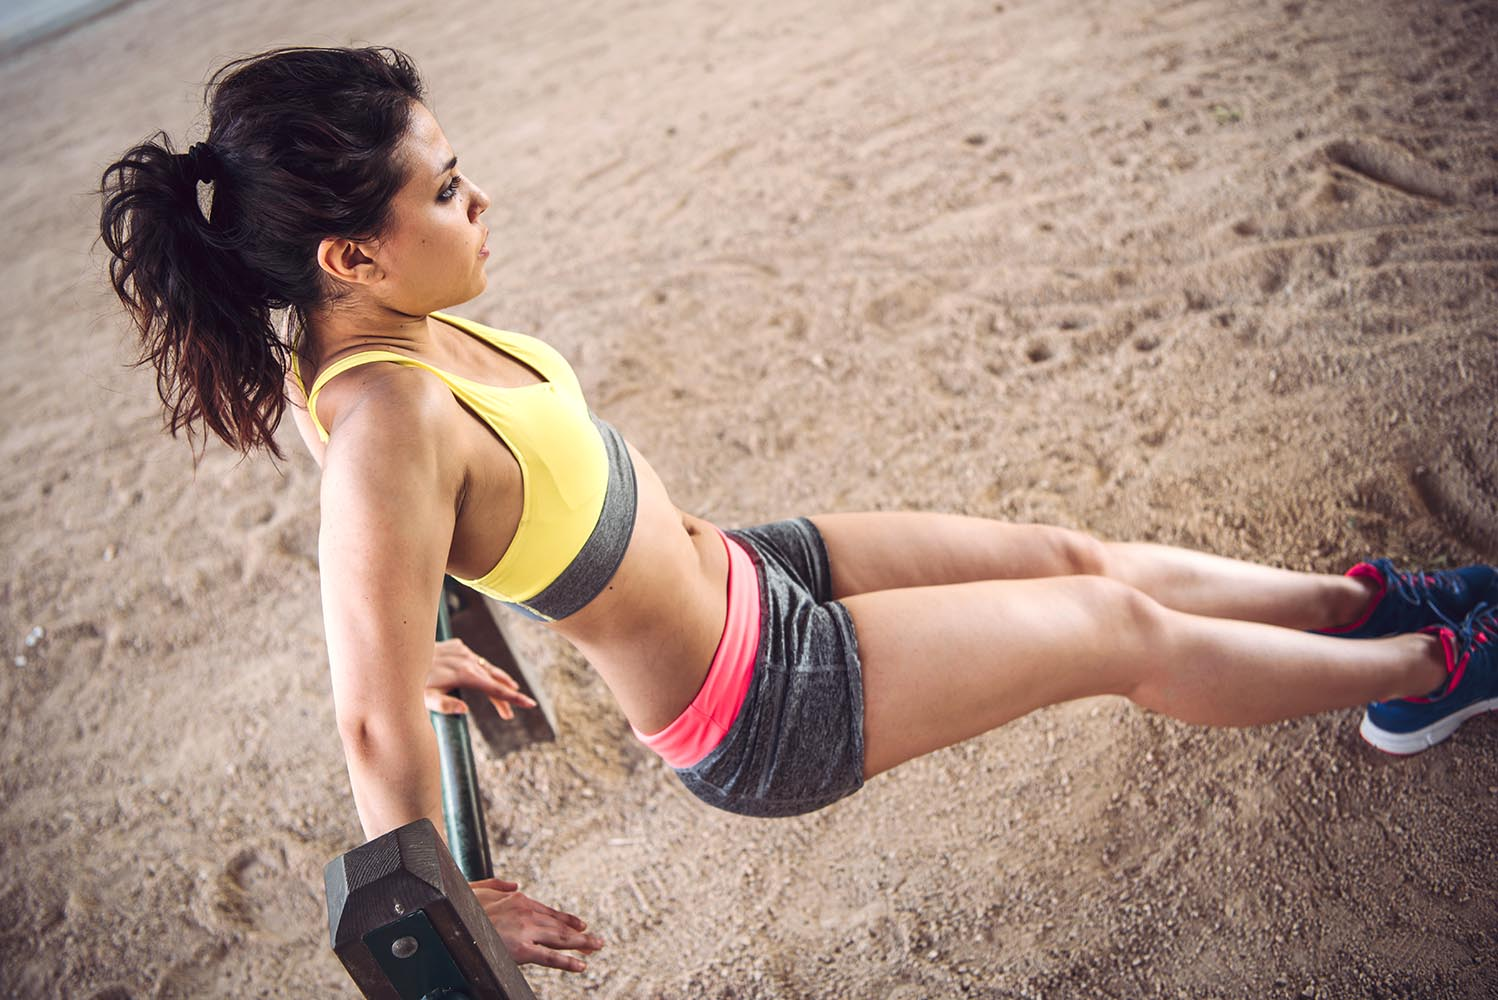 Young Woman working out outdoors and having fun